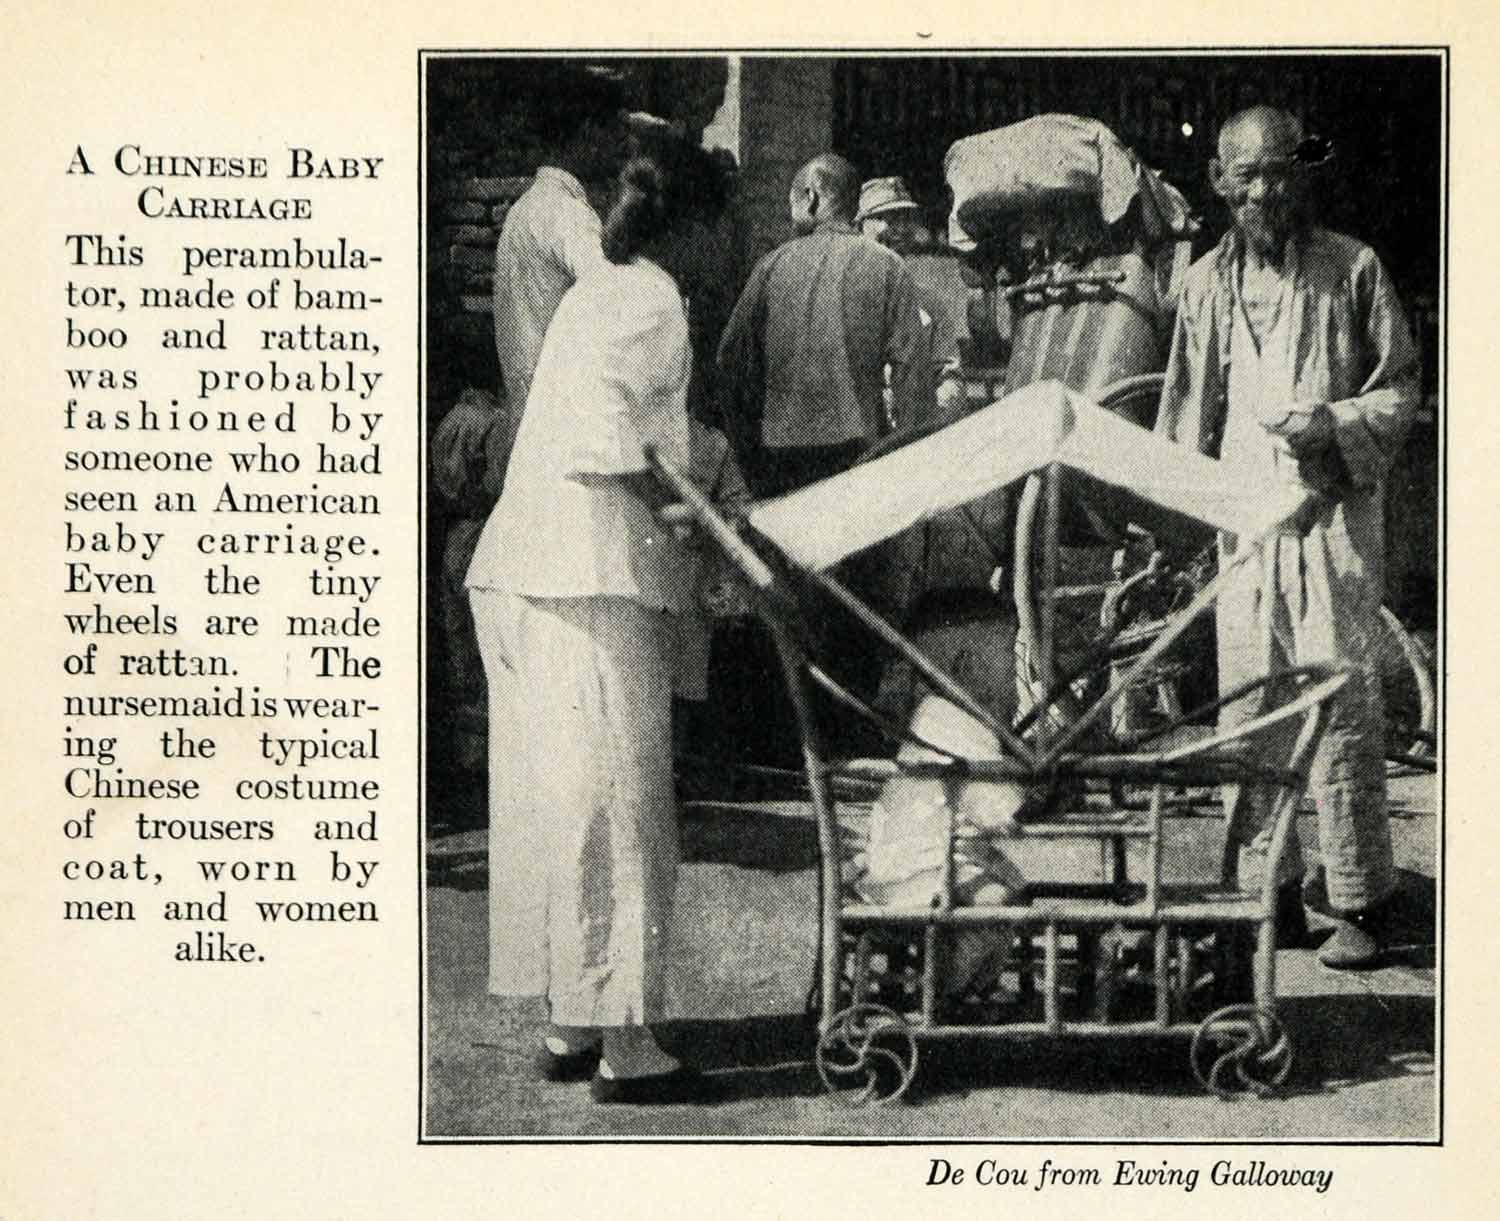 1937 Print China Asia Baby Child Carriage Stroller Perambulator Bamboo XGY4